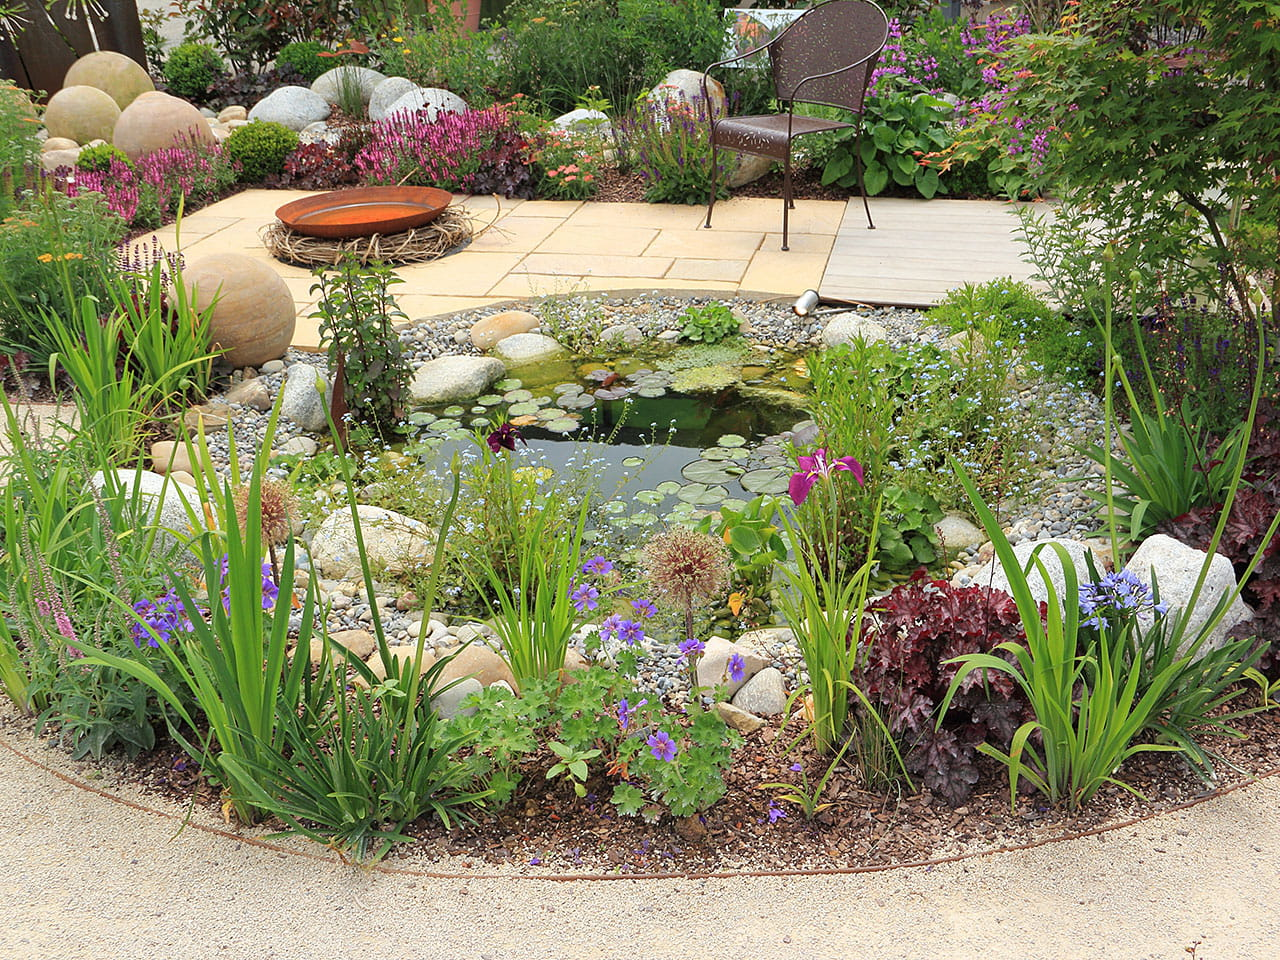 How to design and build a wildlife pond - Saga Natural Garden Designs on mint garden design, subtropical garden design, dry garden design, natural japanese gardens, inexpensive garden design, modern small yard garden design, magic garden design, primitive garden design, different garden design, old-fashioned garden design, natural woodland gardens, color garden design, natural pools and gardens, wine garden design, gorgeous garden design, vegetable garden design, purple garden design, clean garden design, natural propagation, artificial garden design,